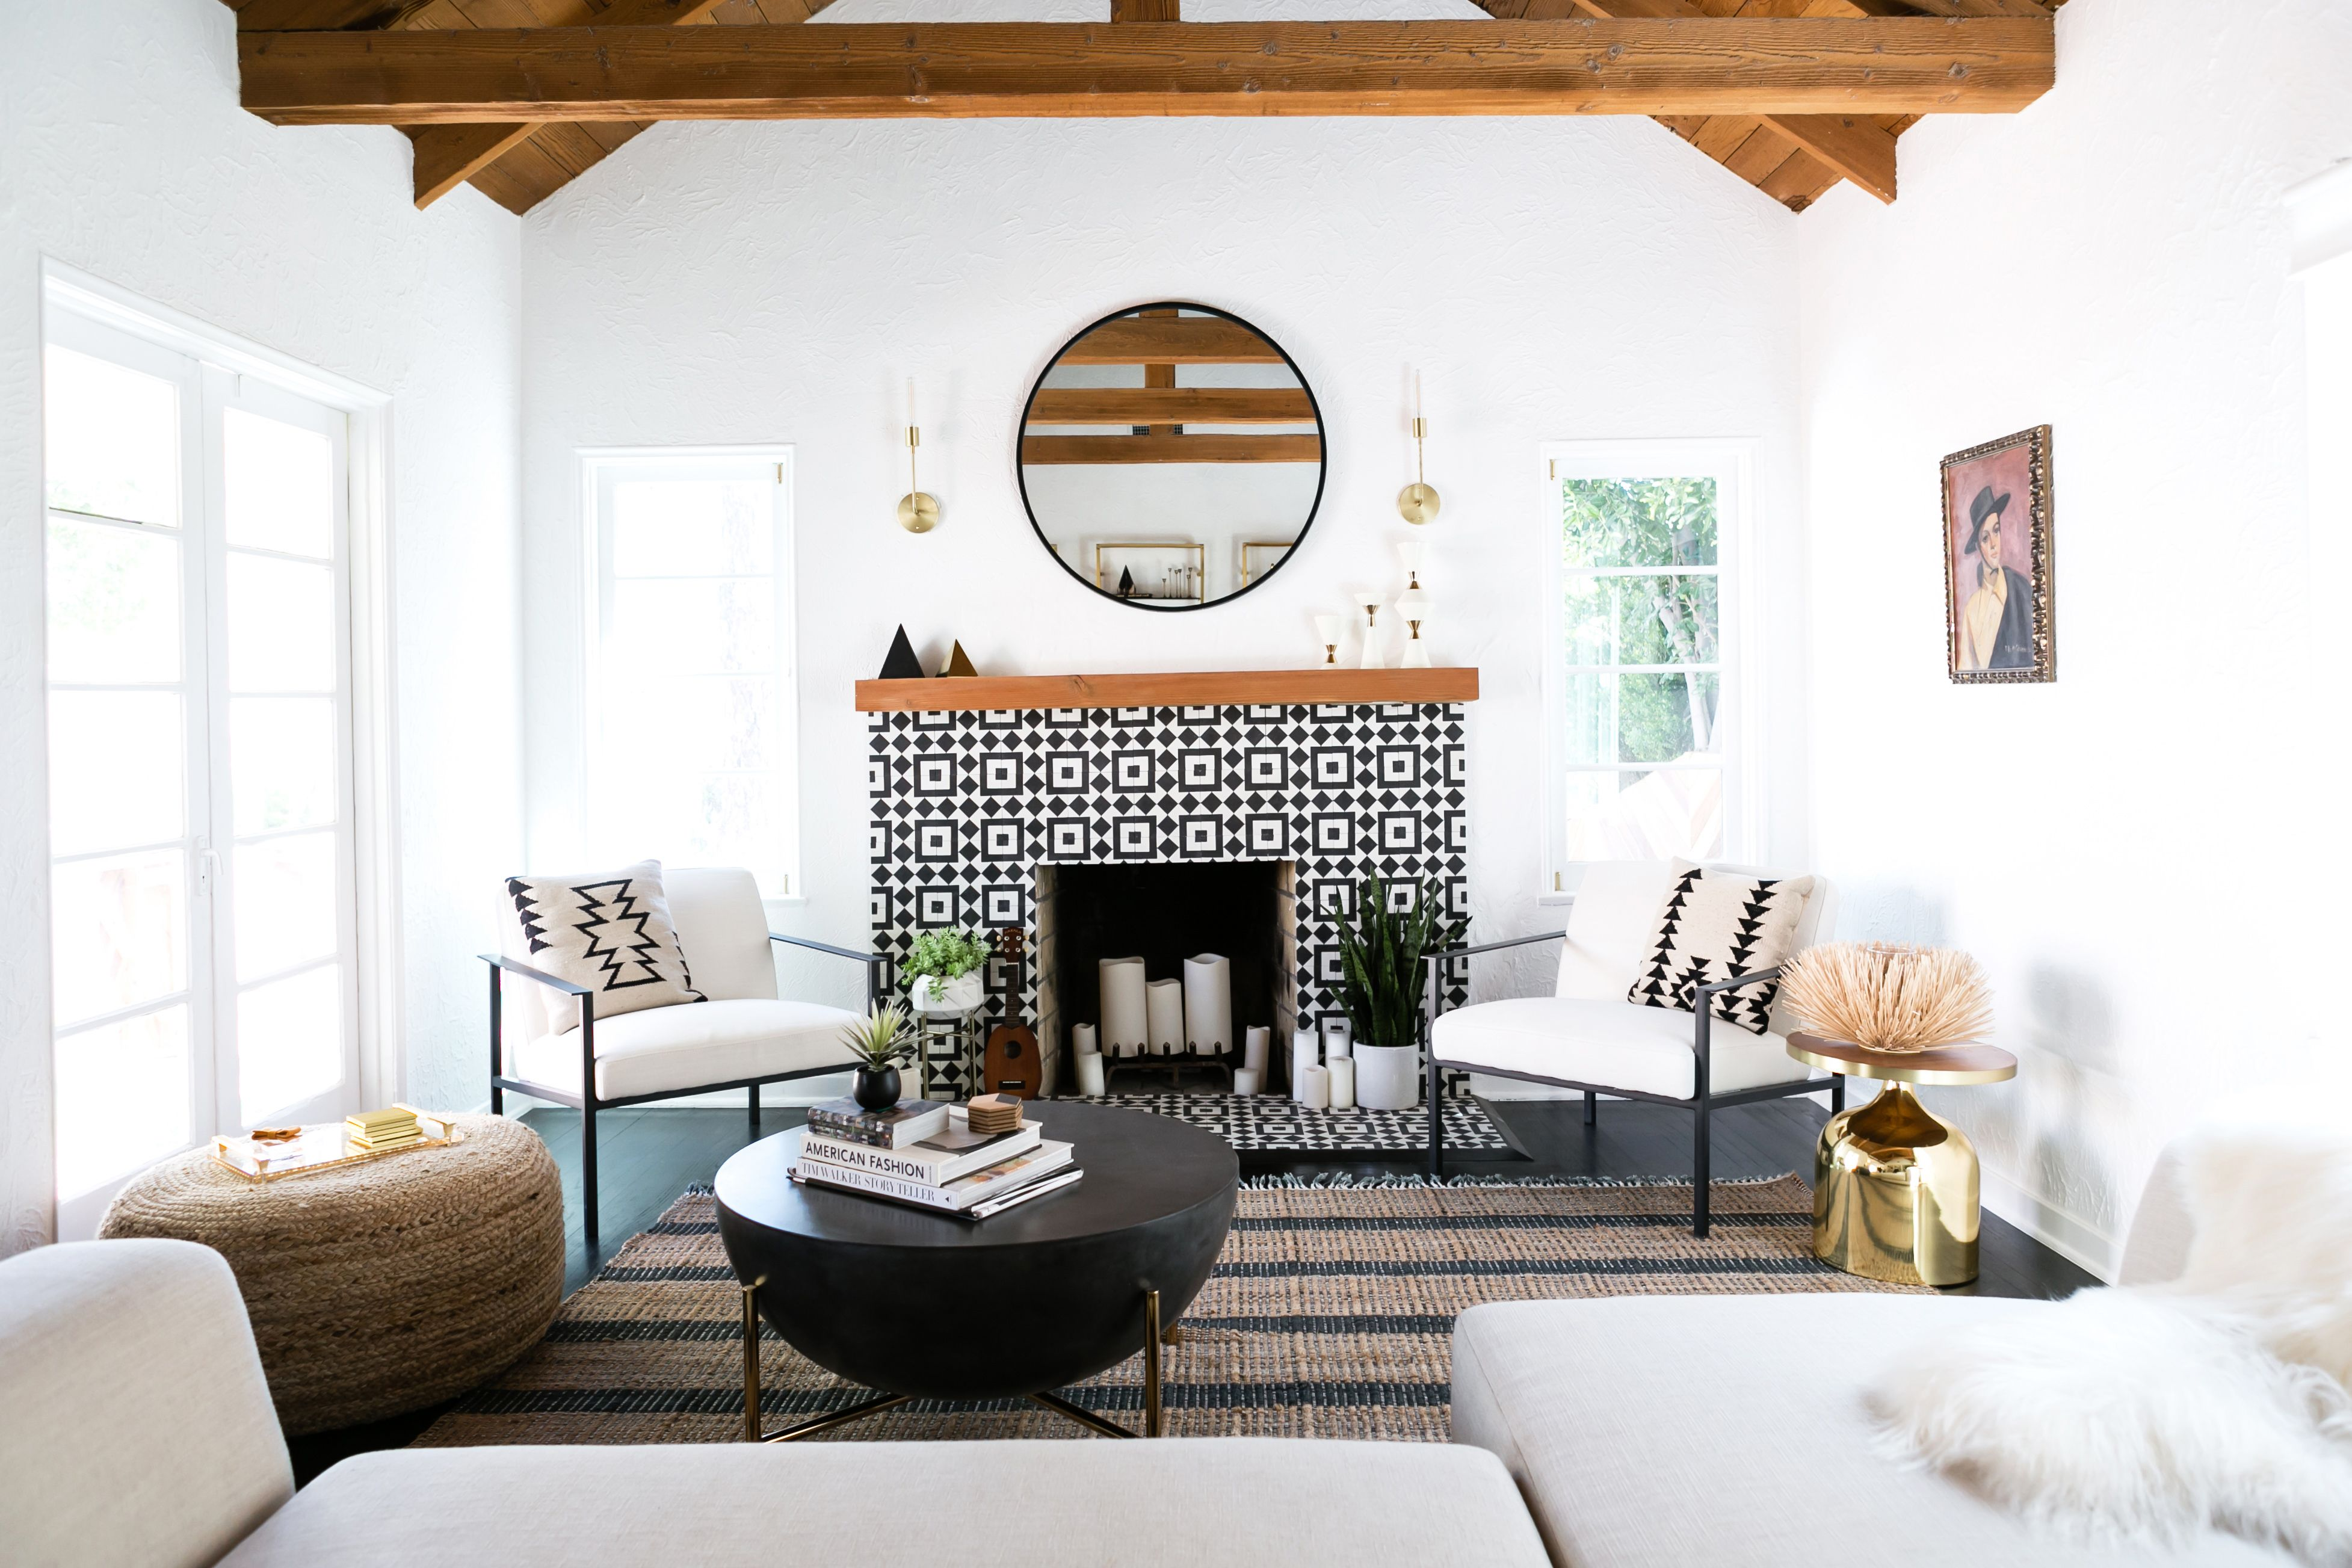 Remodel Designer A Spanish Style Home Is Reimagined - Home Makeover